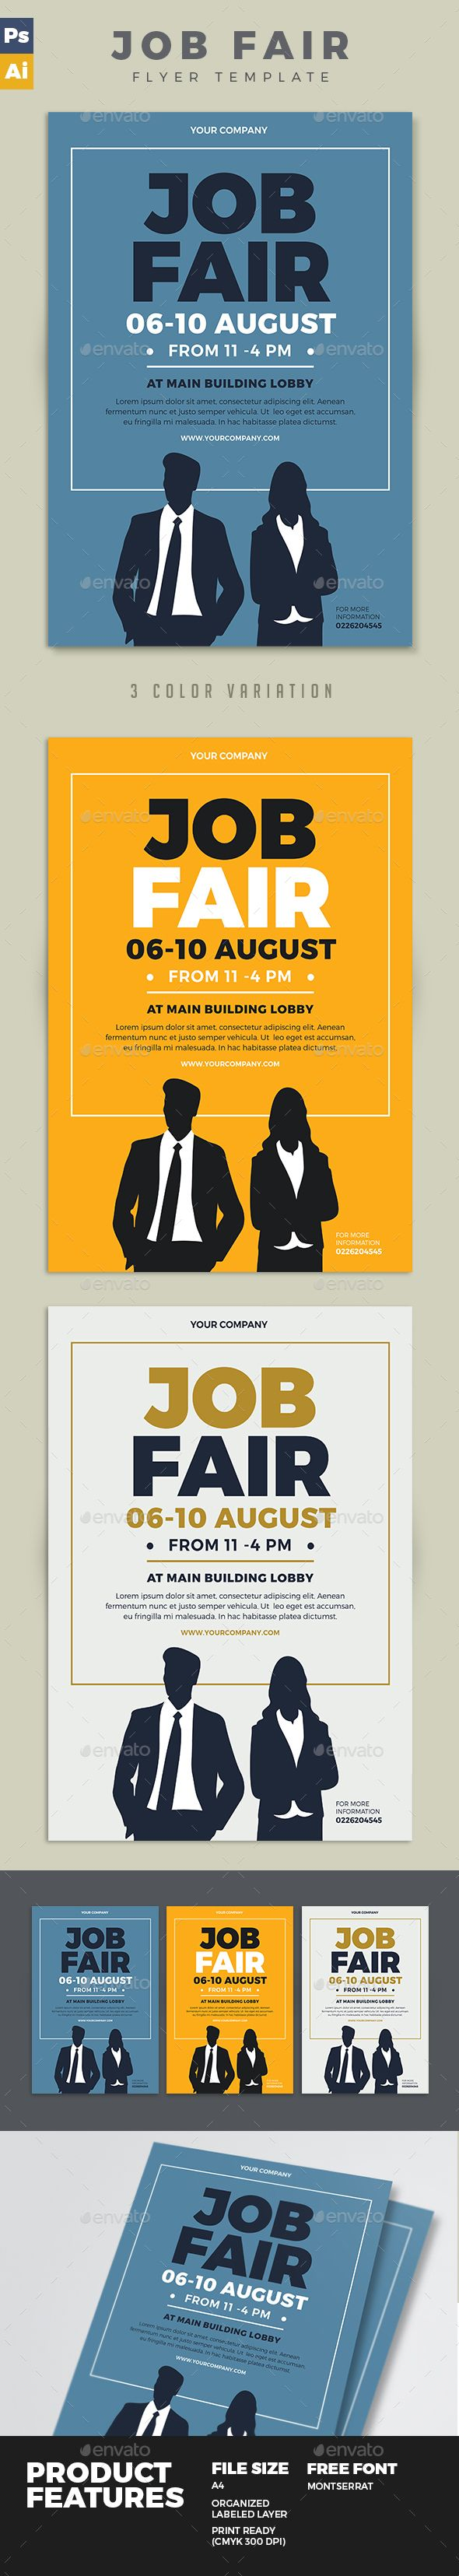 Poster design ideas pinterest - Job Fair Flyer